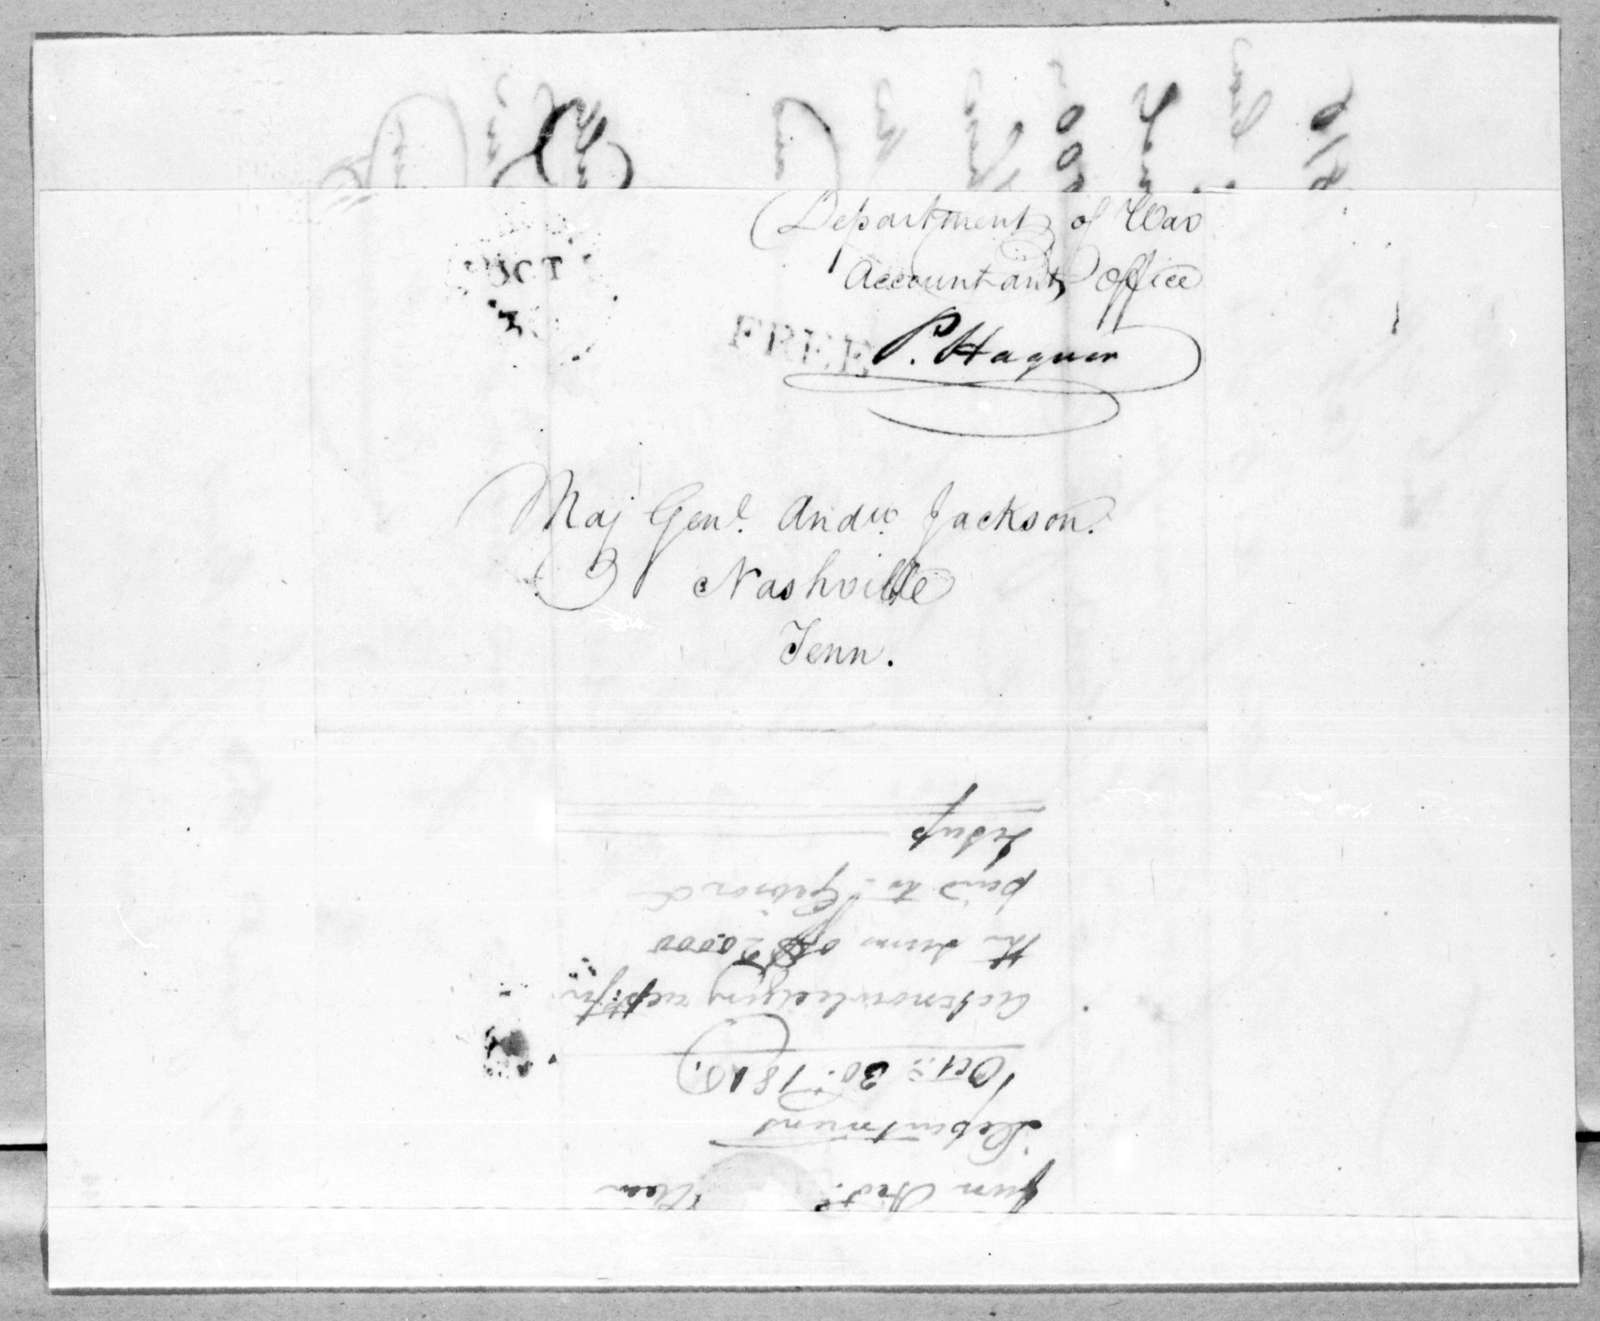 Peter Hagner to Andrew Jackson, October 30, 1816